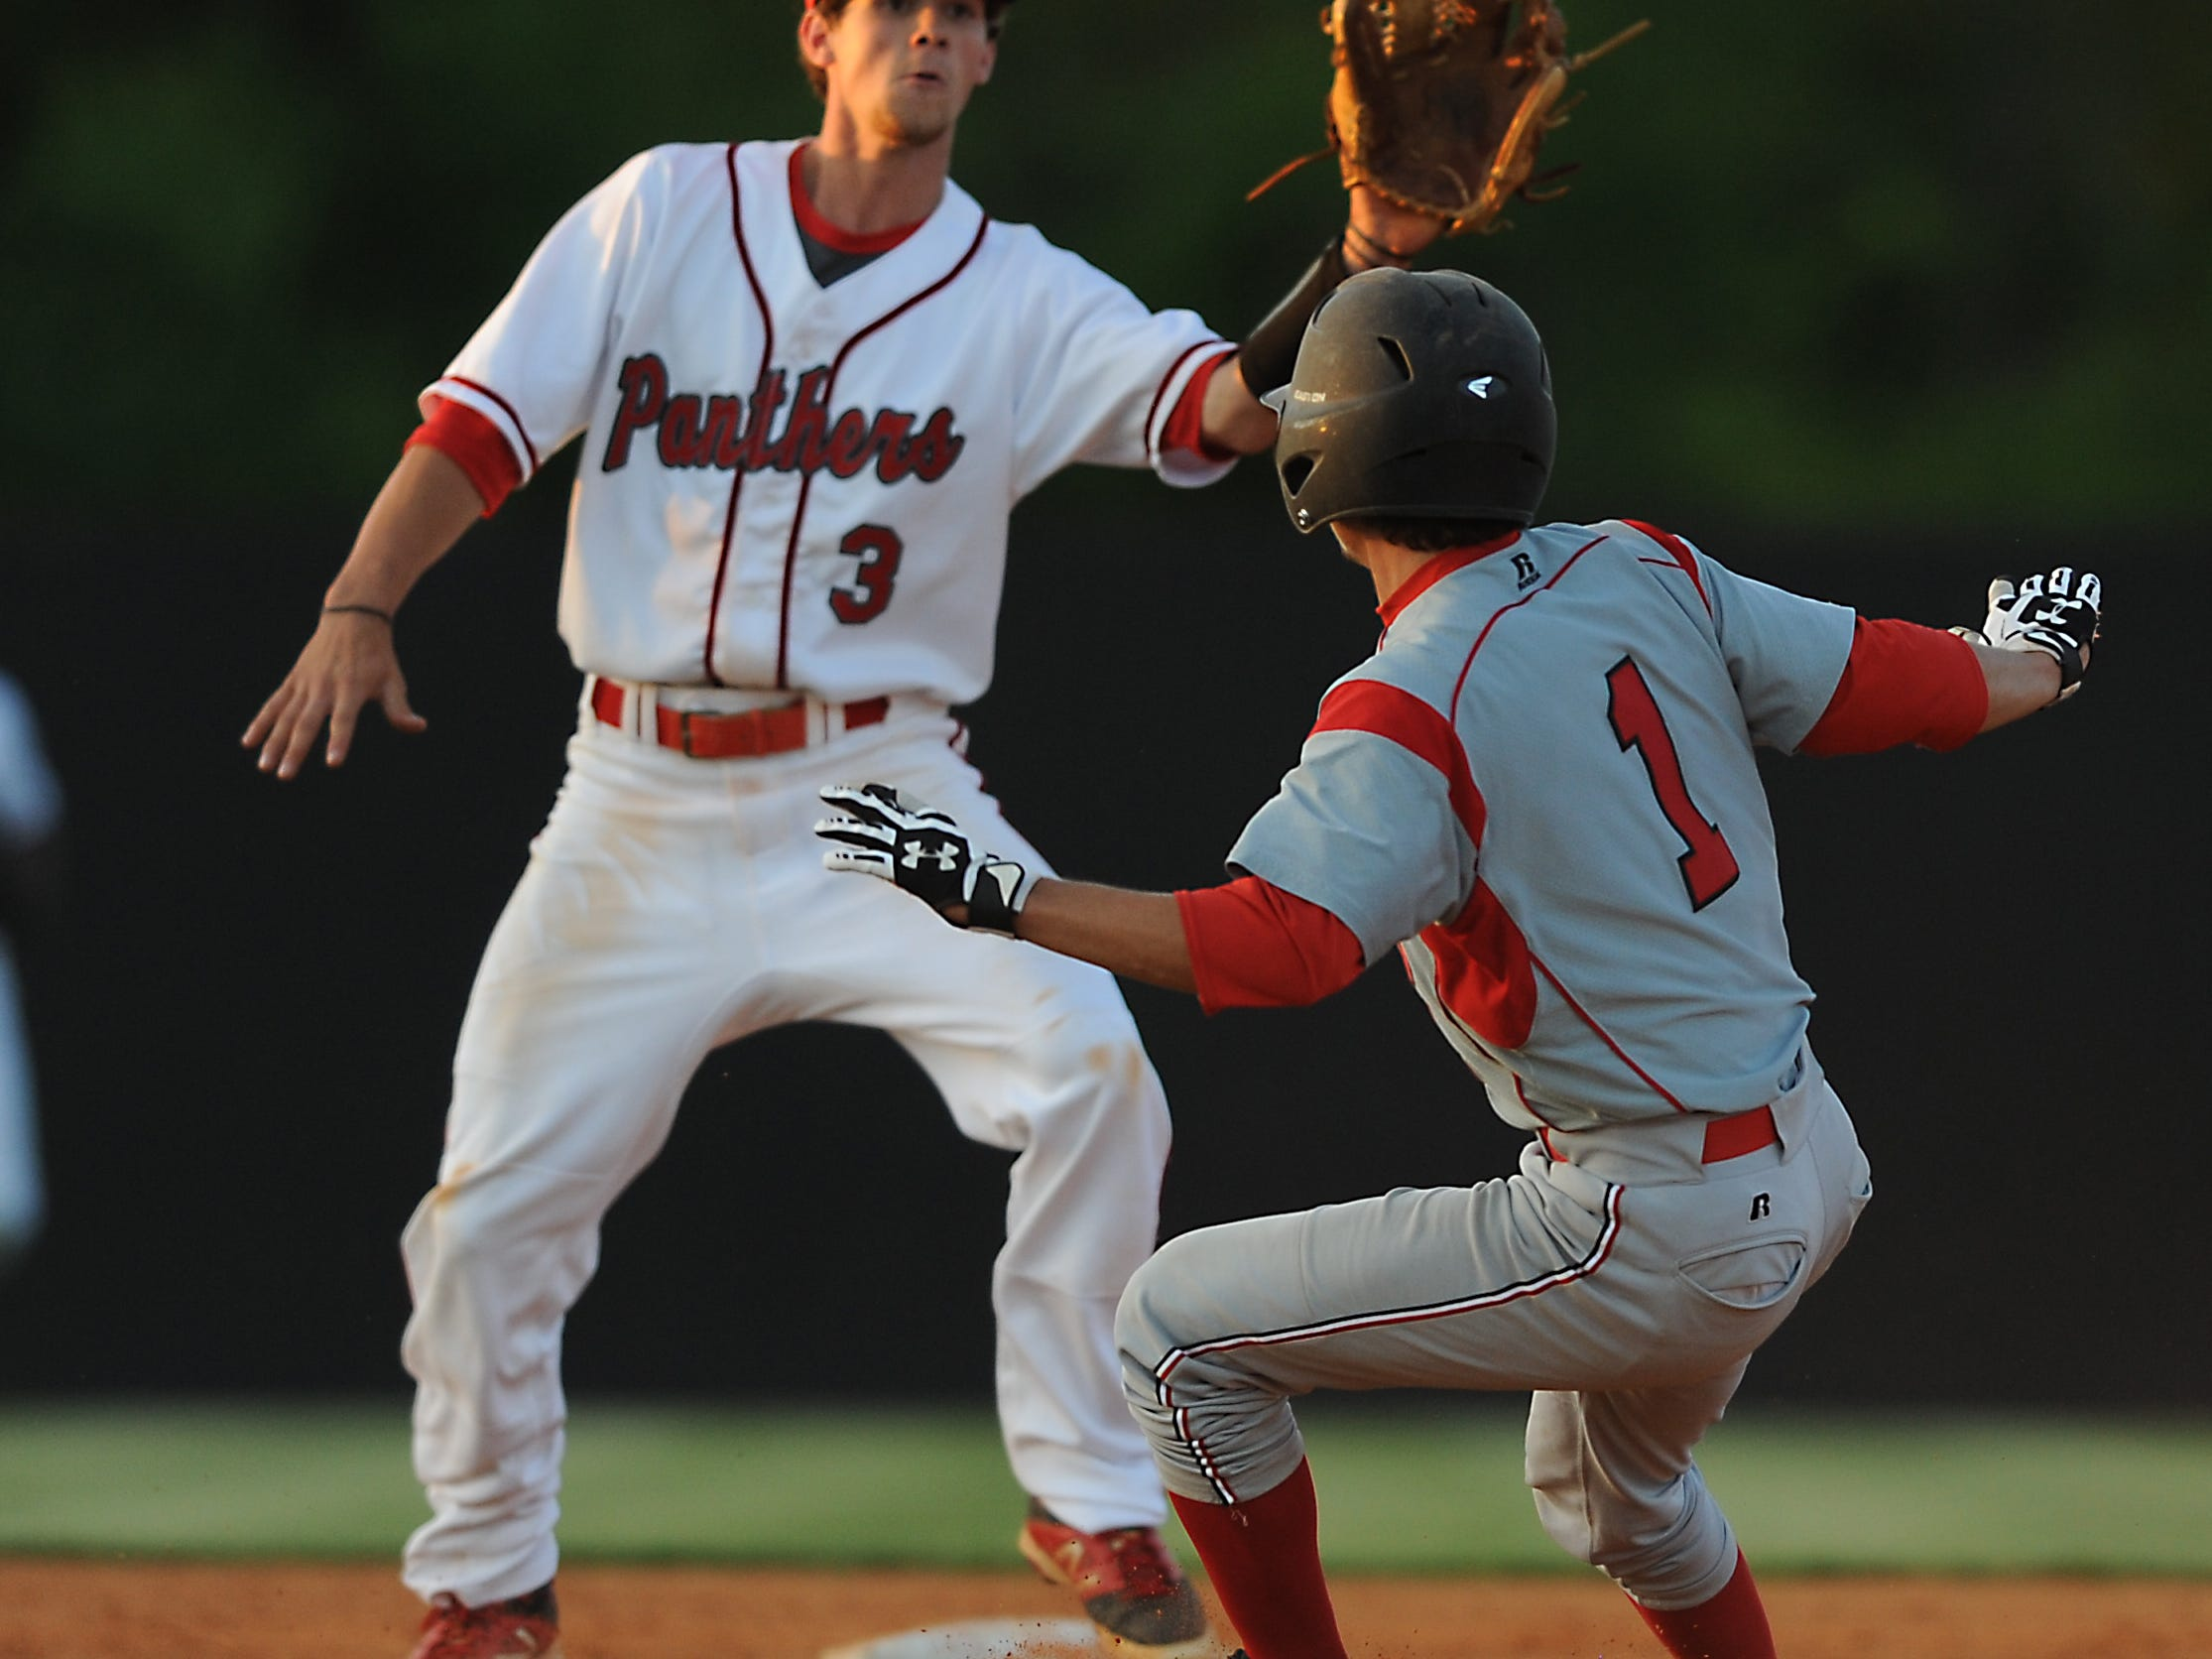 Petal shortstop Zach Giacona fields the ball as Harrison Central's Austin Johnson puts on the brakes in Thursday's game at Panther Field in Petal.